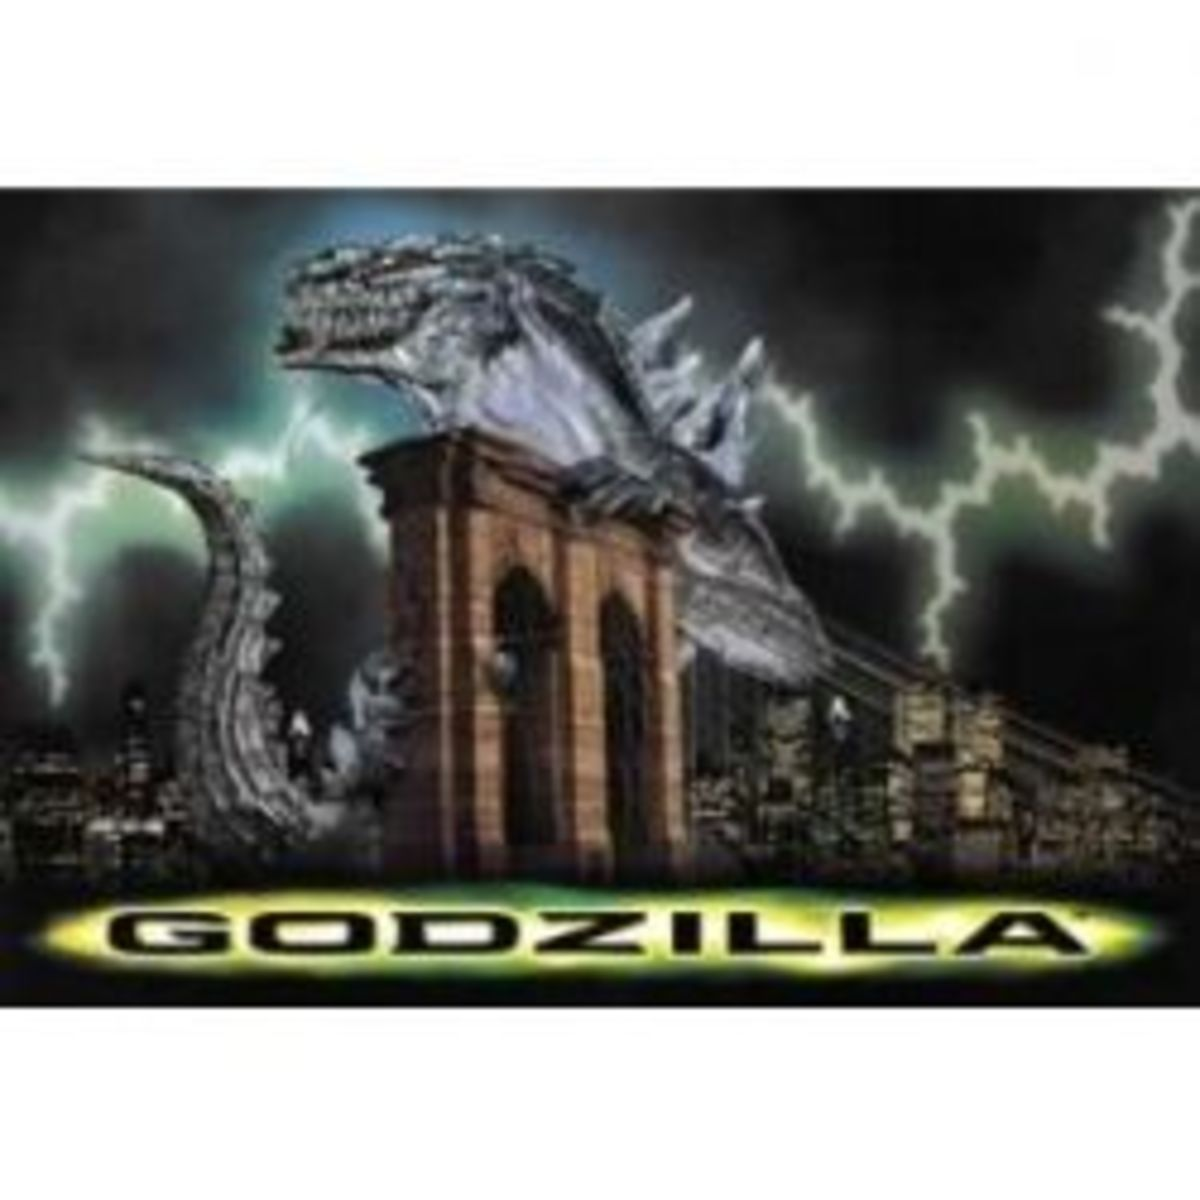 Godzilla 2014 Themed Birthday Party ideas & Supplies